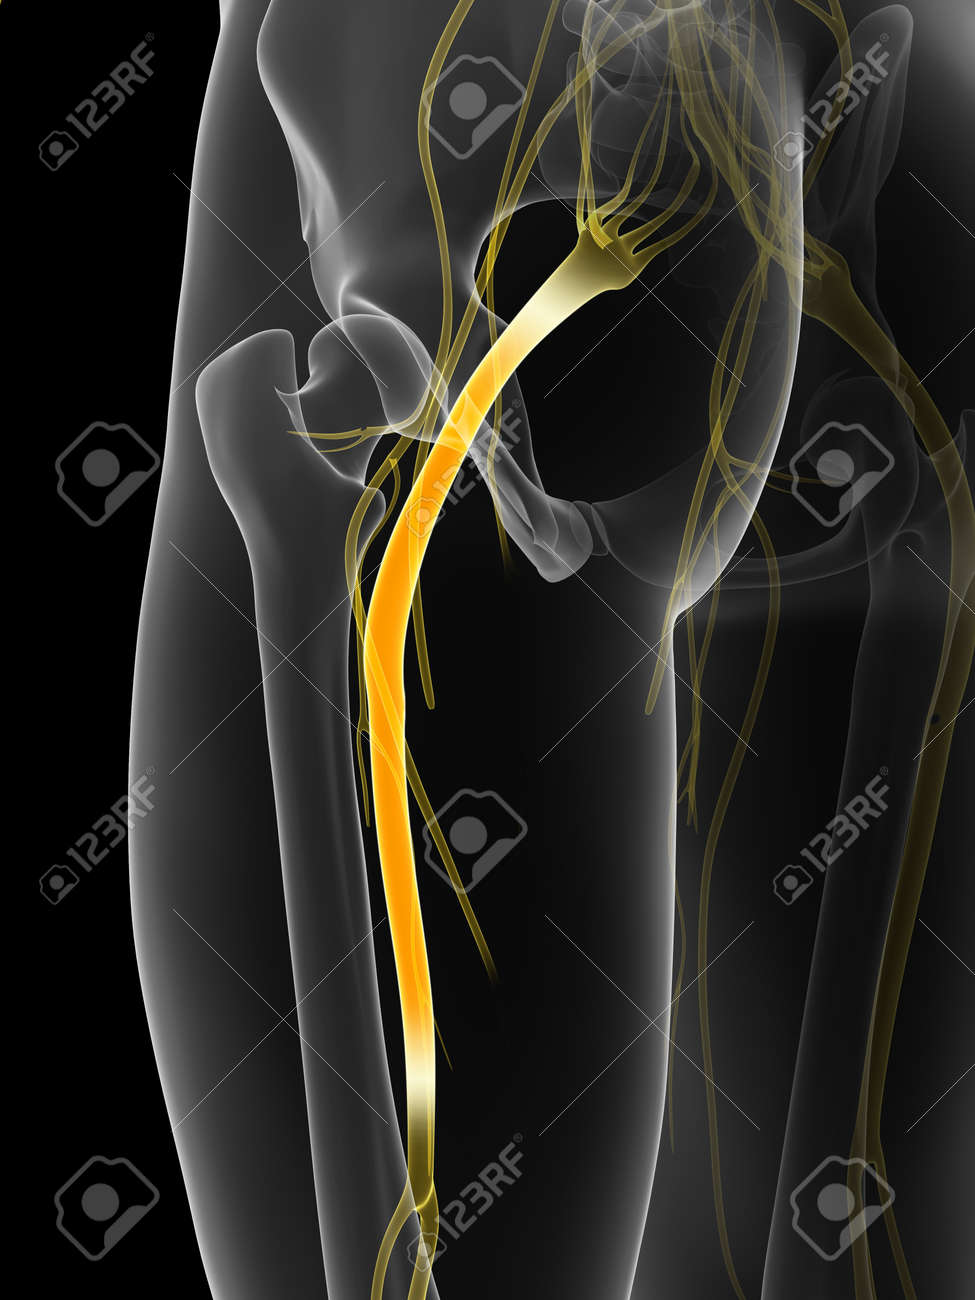 3d Rendered Illustration Of The Sciatic Nerve Stock Photo Picture